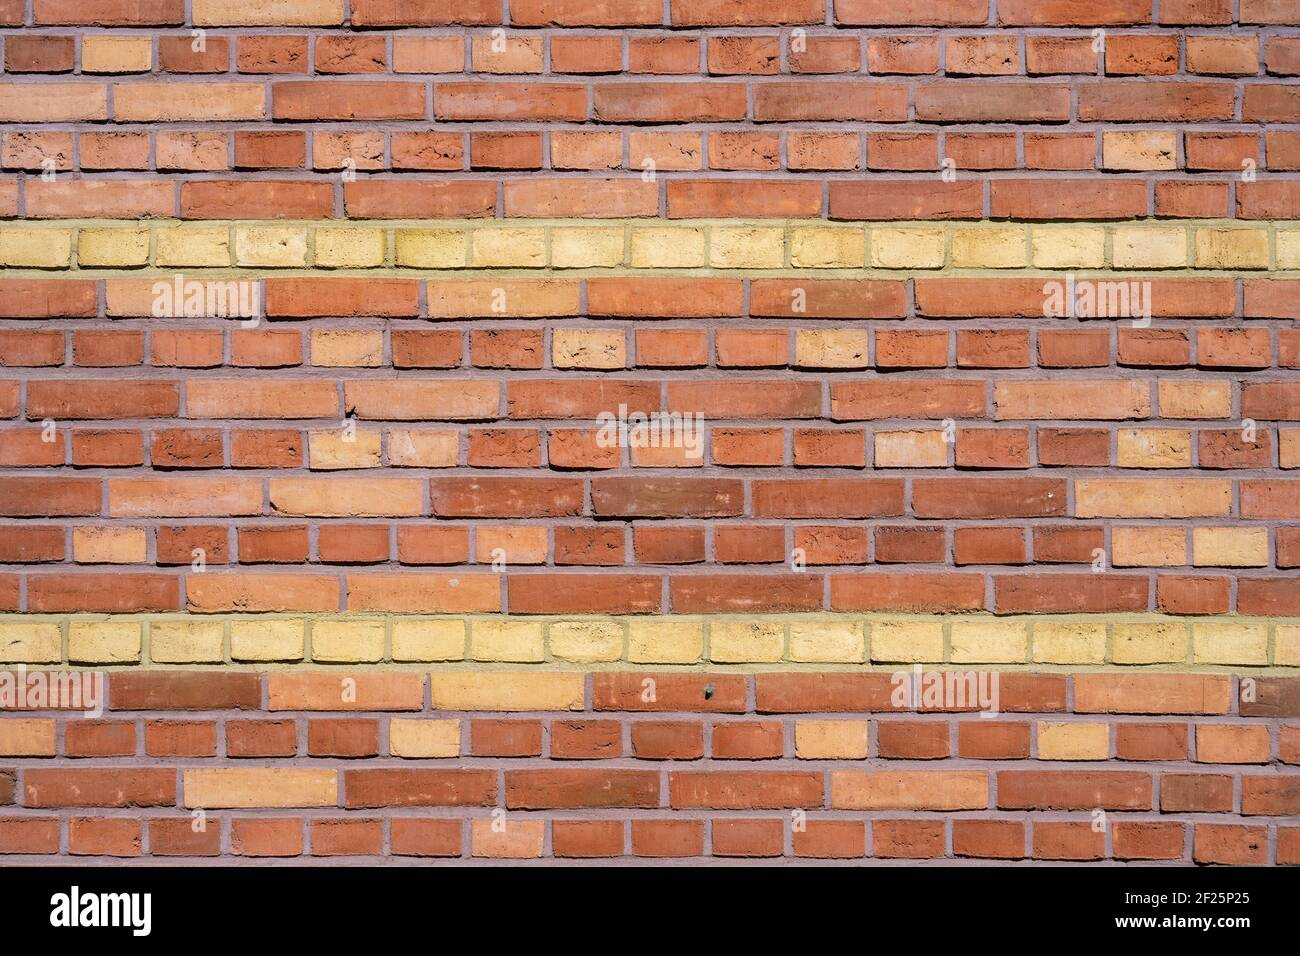 Background from a red brick wall with yellow stripes Stock Photo